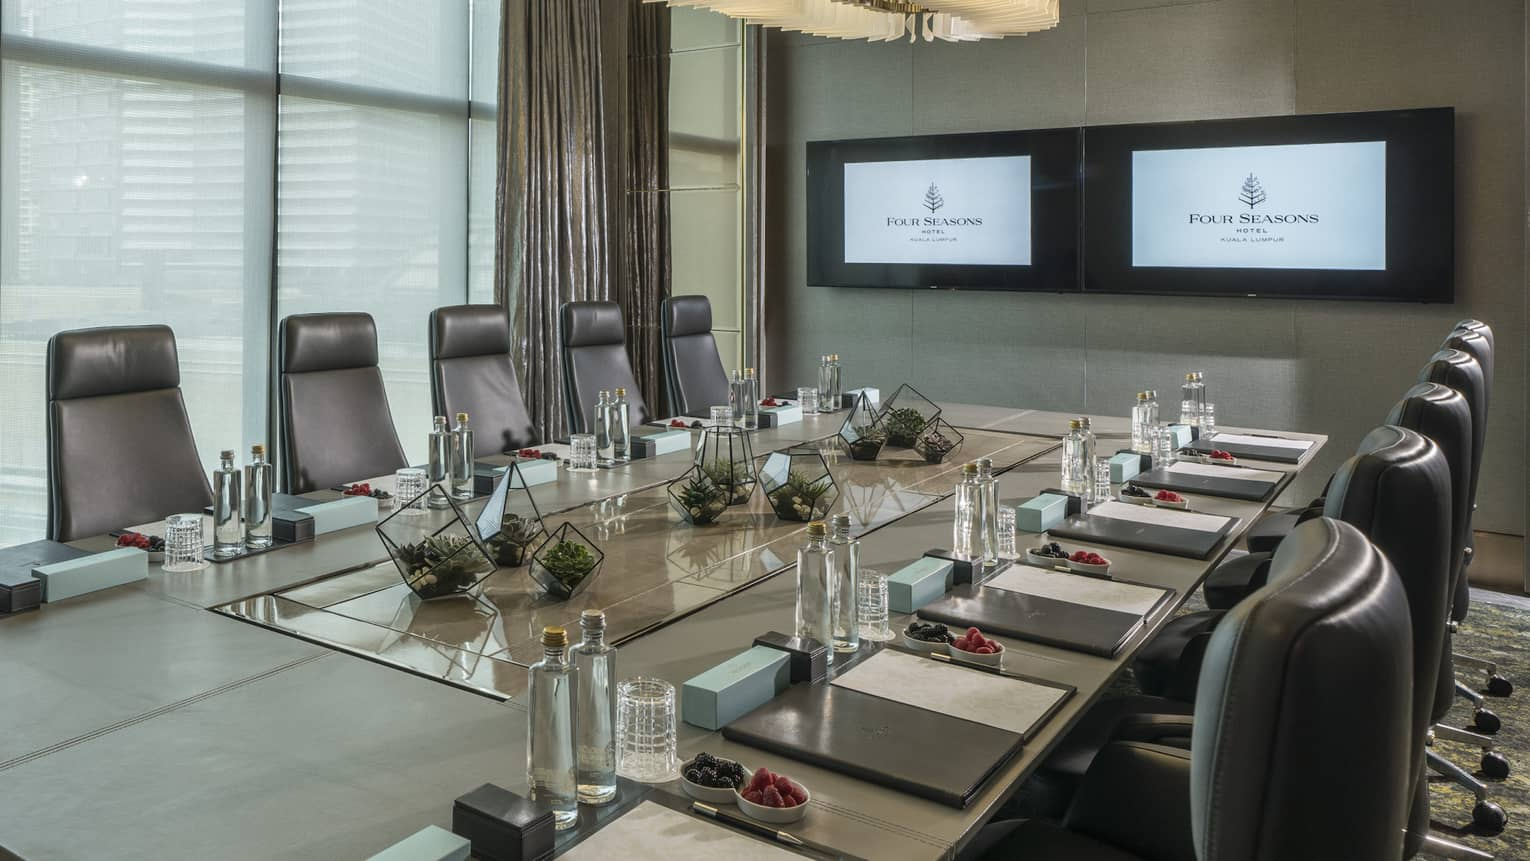 Private meeting room at Four Seasons Hotel Kuala Lumpur, featuring floor-to-ceiling windows